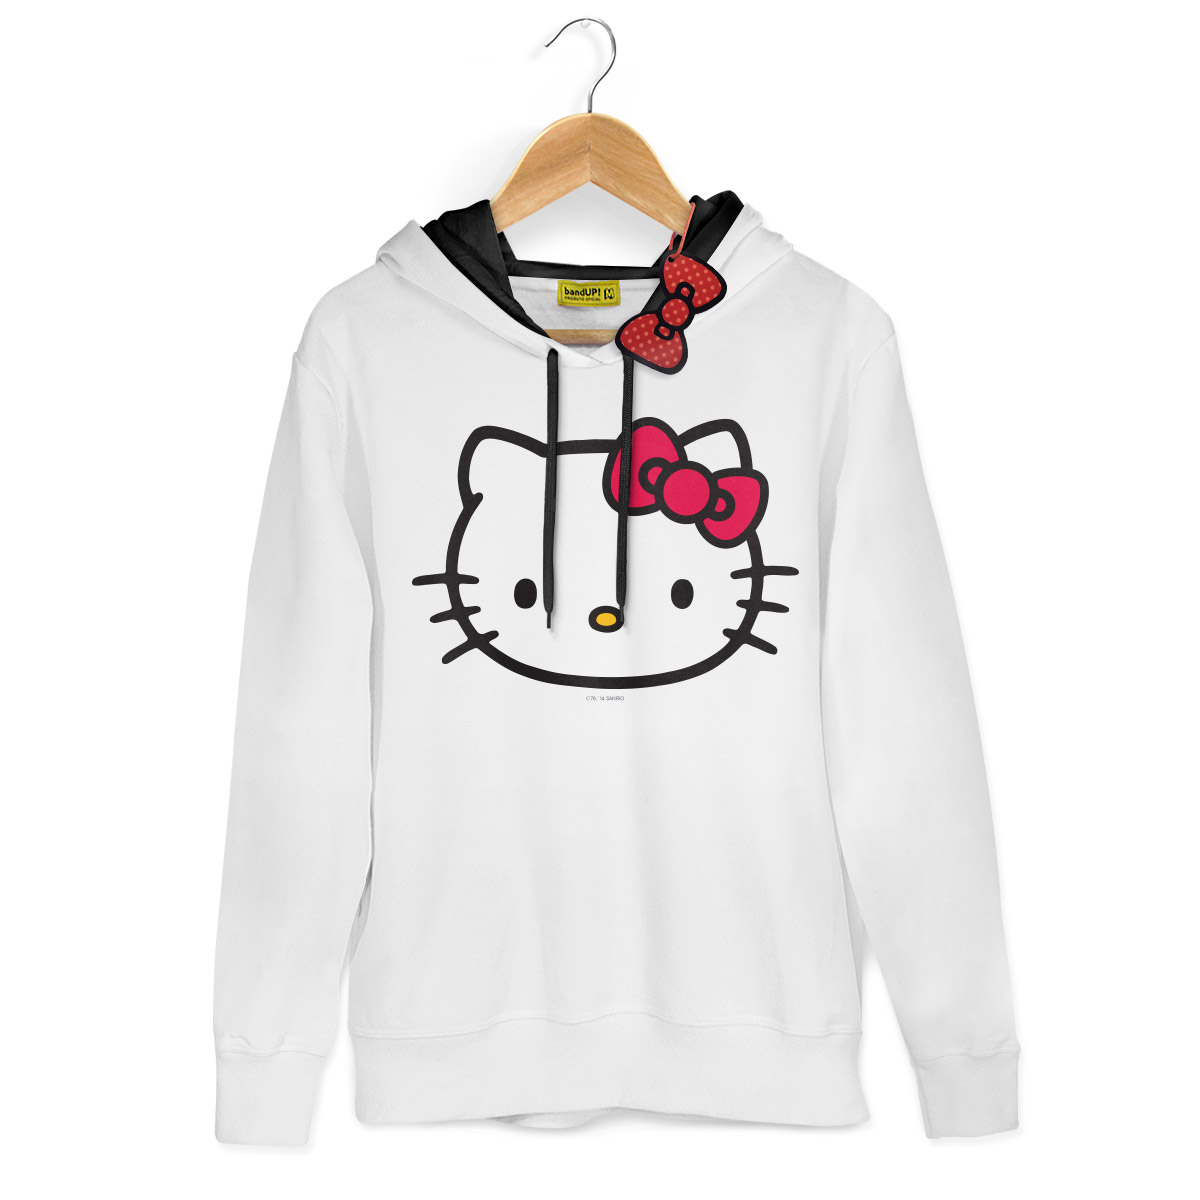 Moletom Branco Hello Kitty Tradicional 2